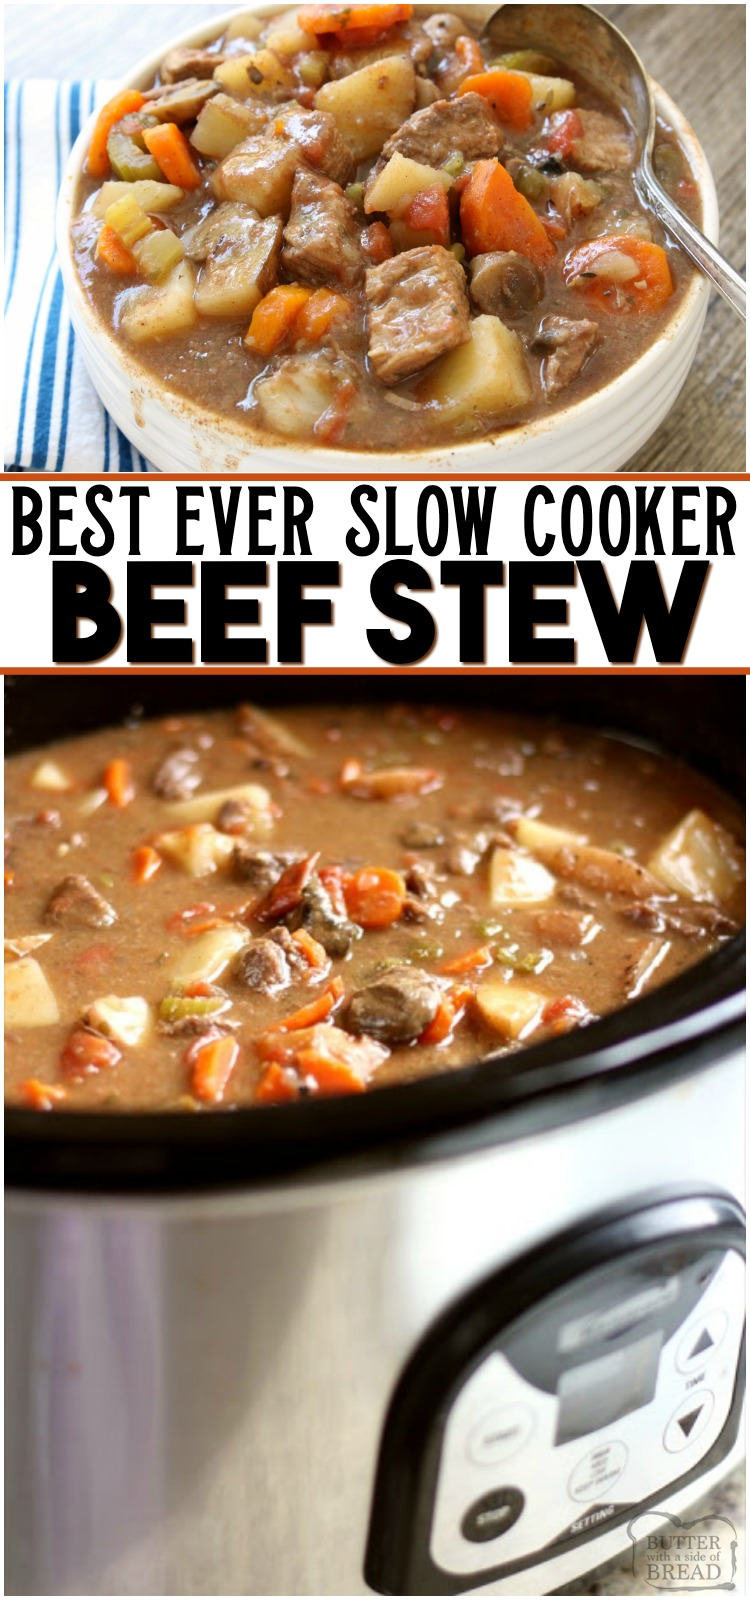 Beef Stew Crock Pot recipe made with tender chunks of beef, loads of vegetables and a simple mixture of broth and spices that yields the BEST slow cooker beef stew ever! #beef #stew #stewrecipe #slowcooker #crockpot #beefstew #homemadestew from BUTTER WITH A SIDE OF BREAD